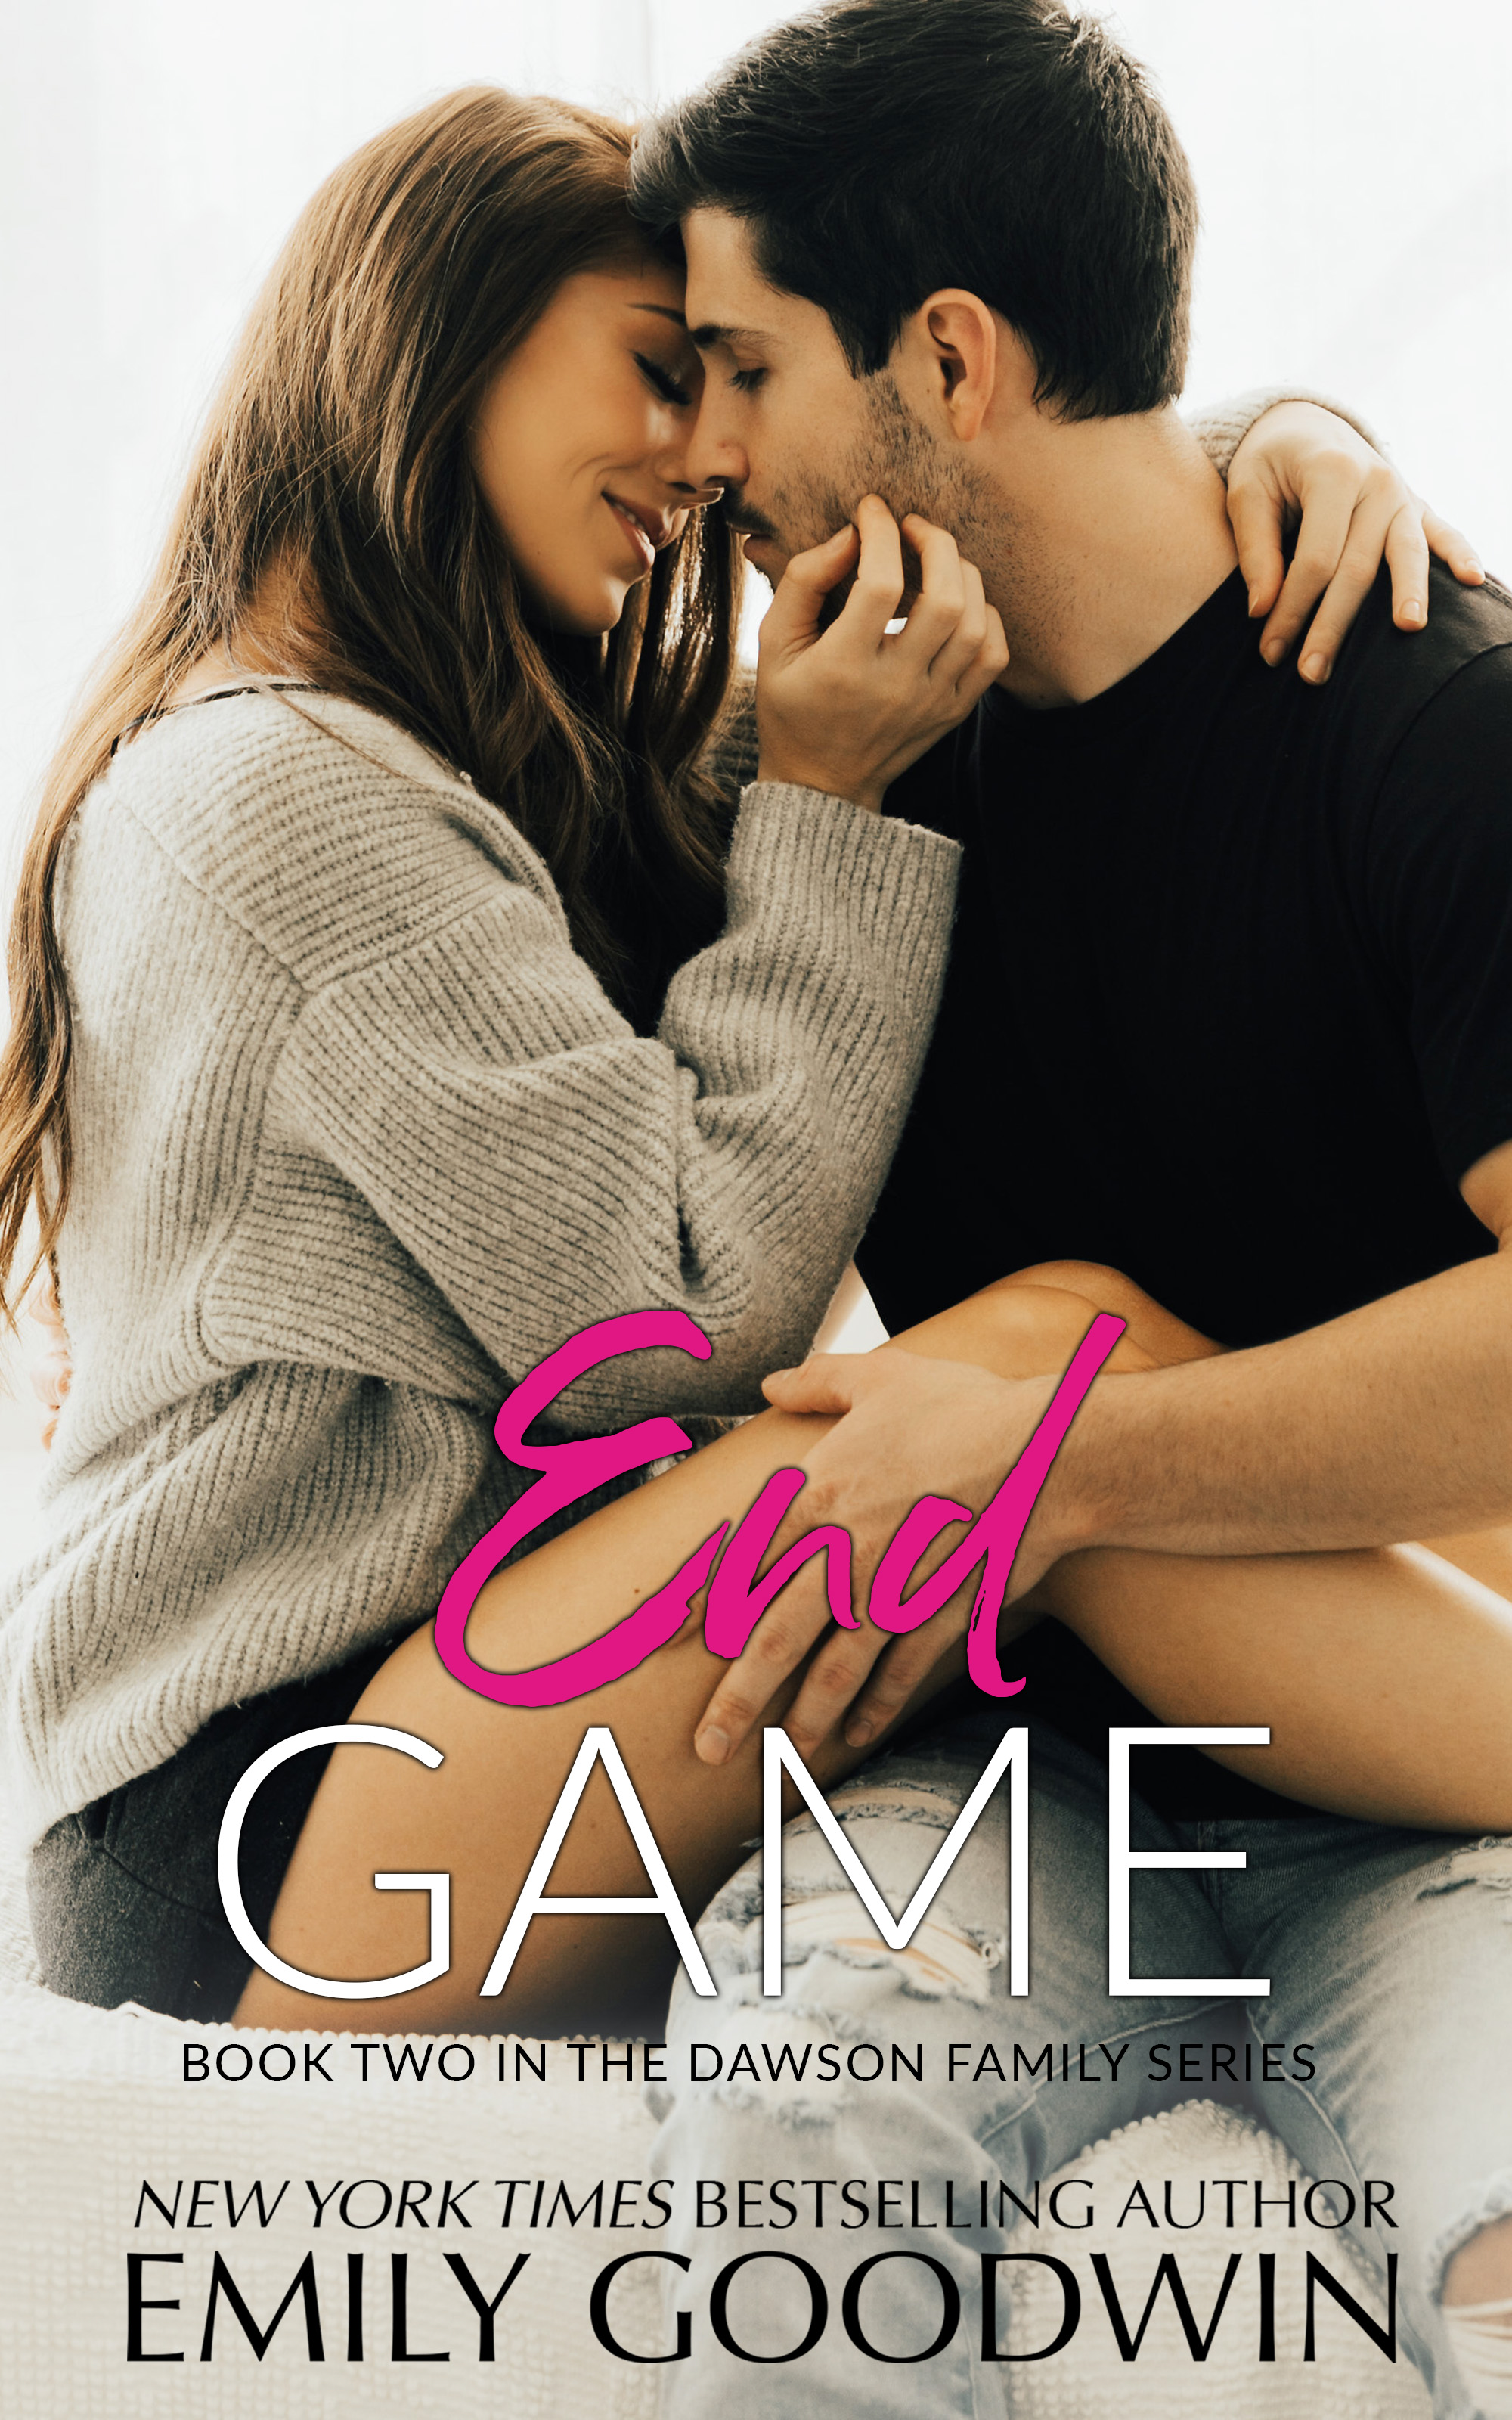 End Game ebook UPDATED.jpg